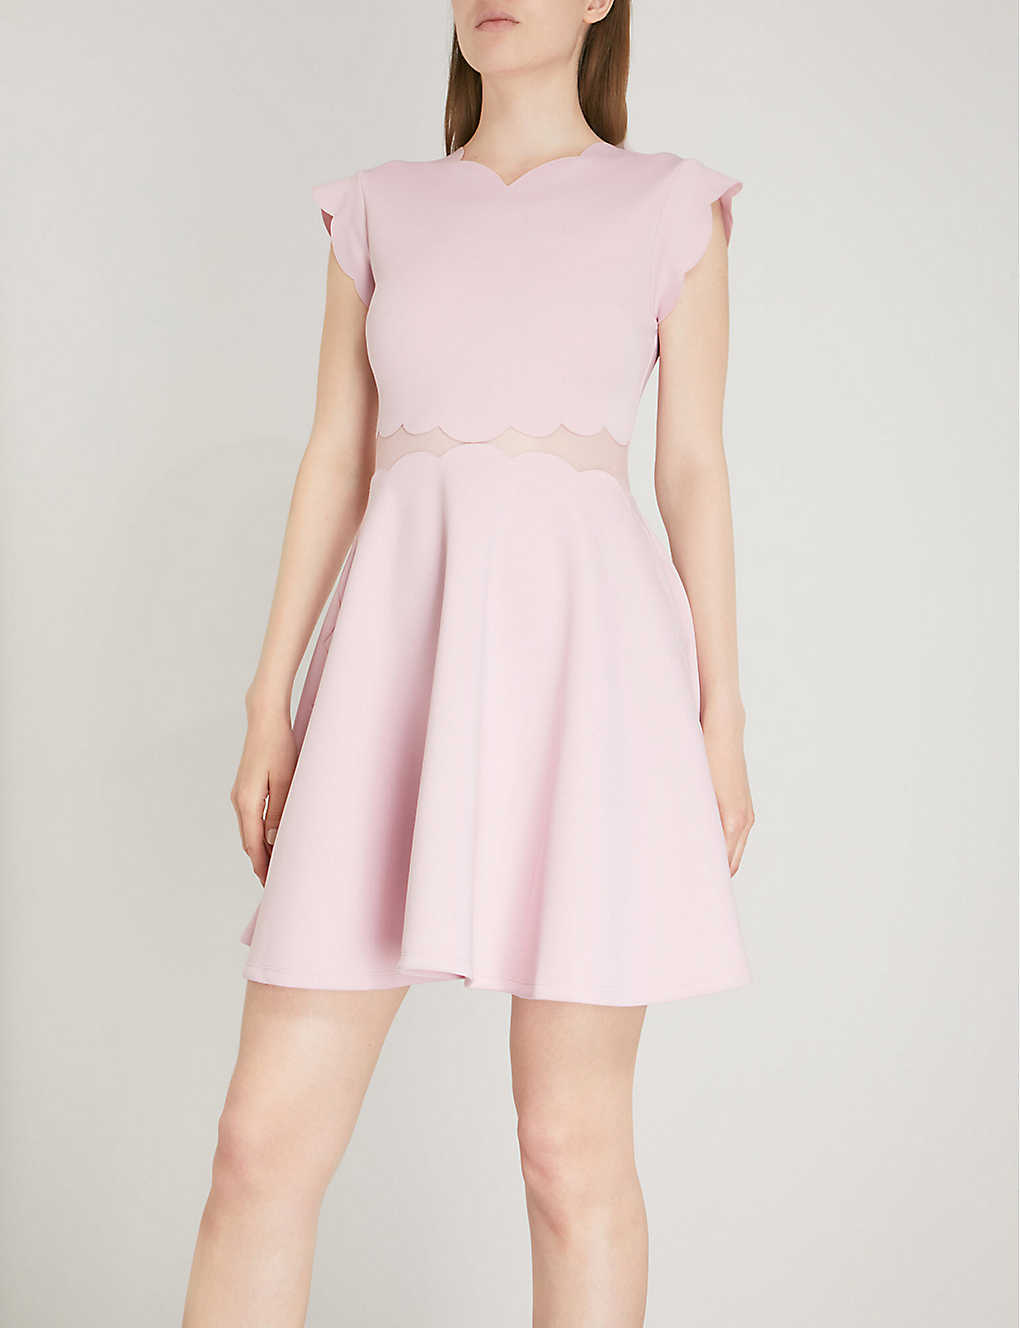 a11a80576a53 ... Omarria scalloped jersey dress - Lilac ...